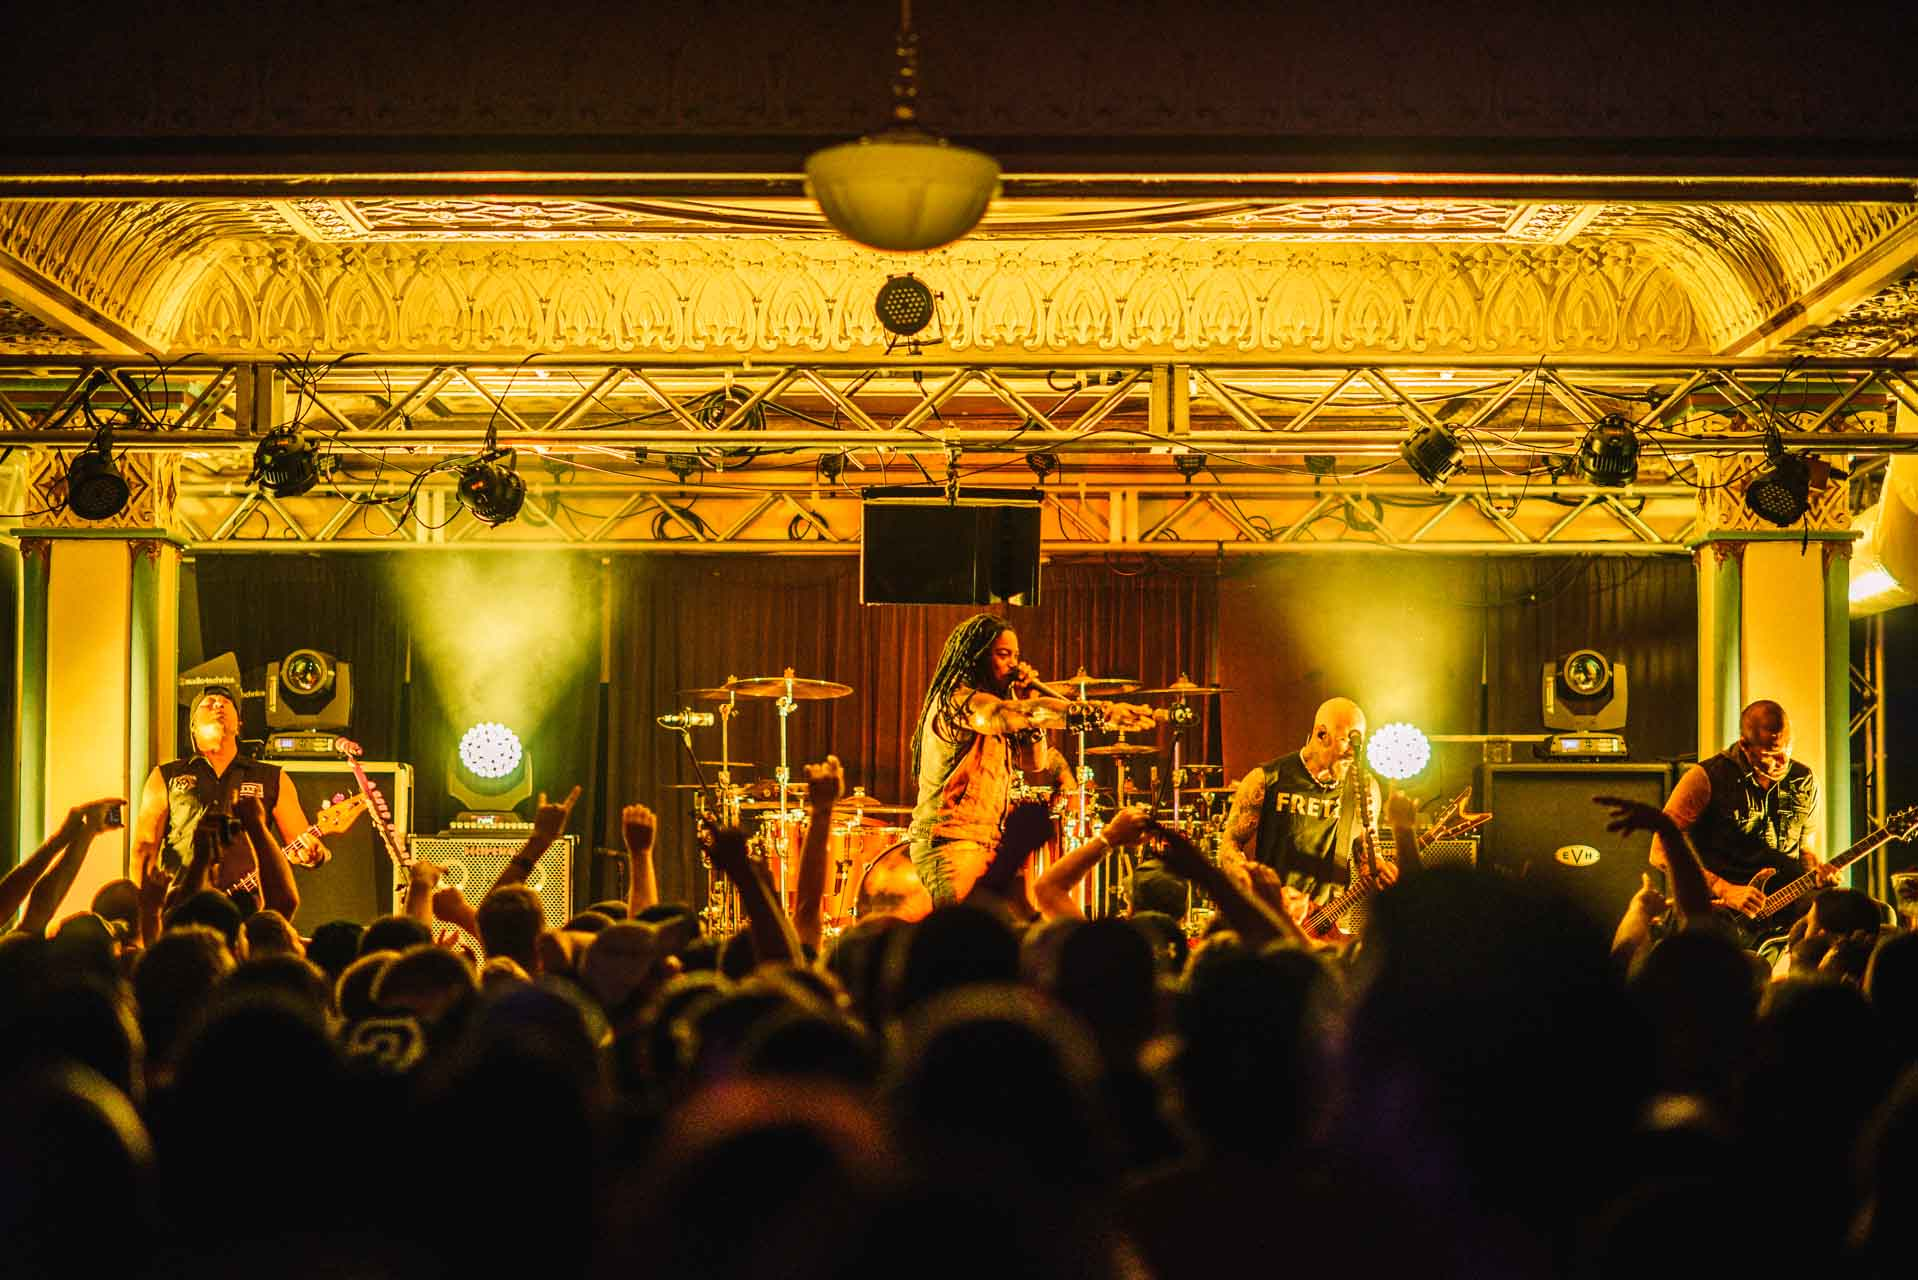 sevendust_live_deluxe_indianapolis_2013-45